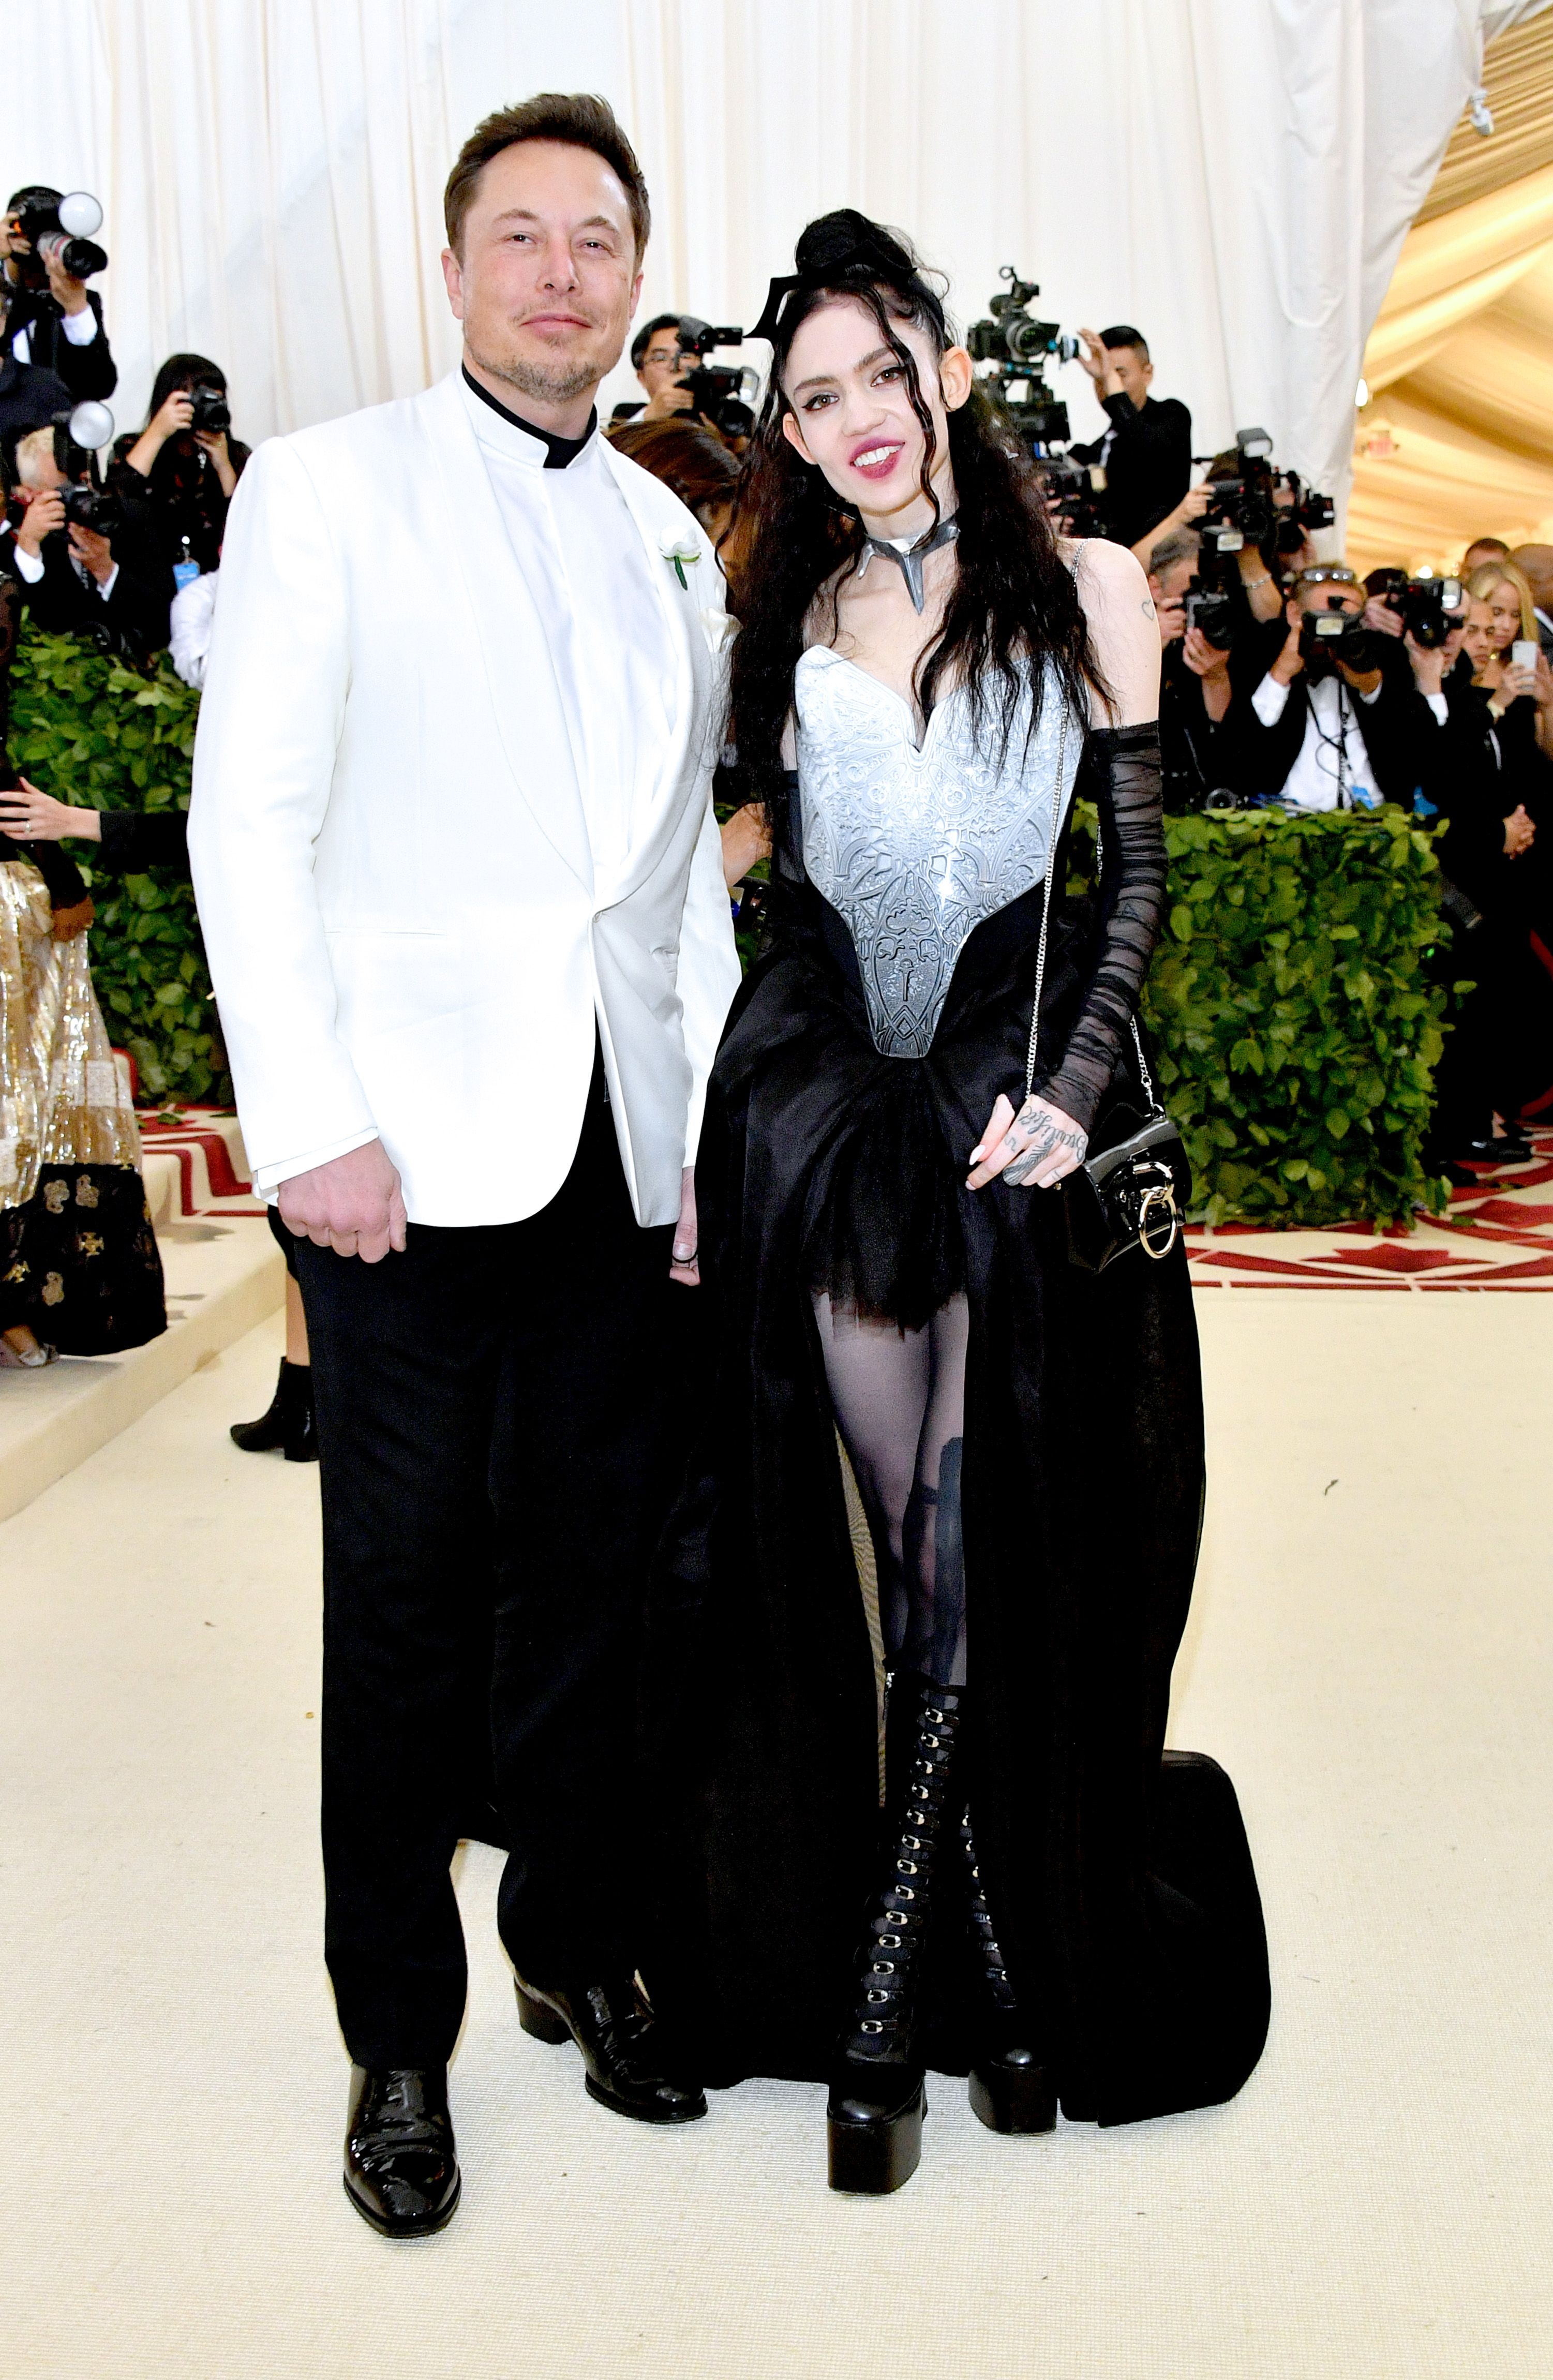 Elon Musk & Grimes dress up for Met Gala 2019